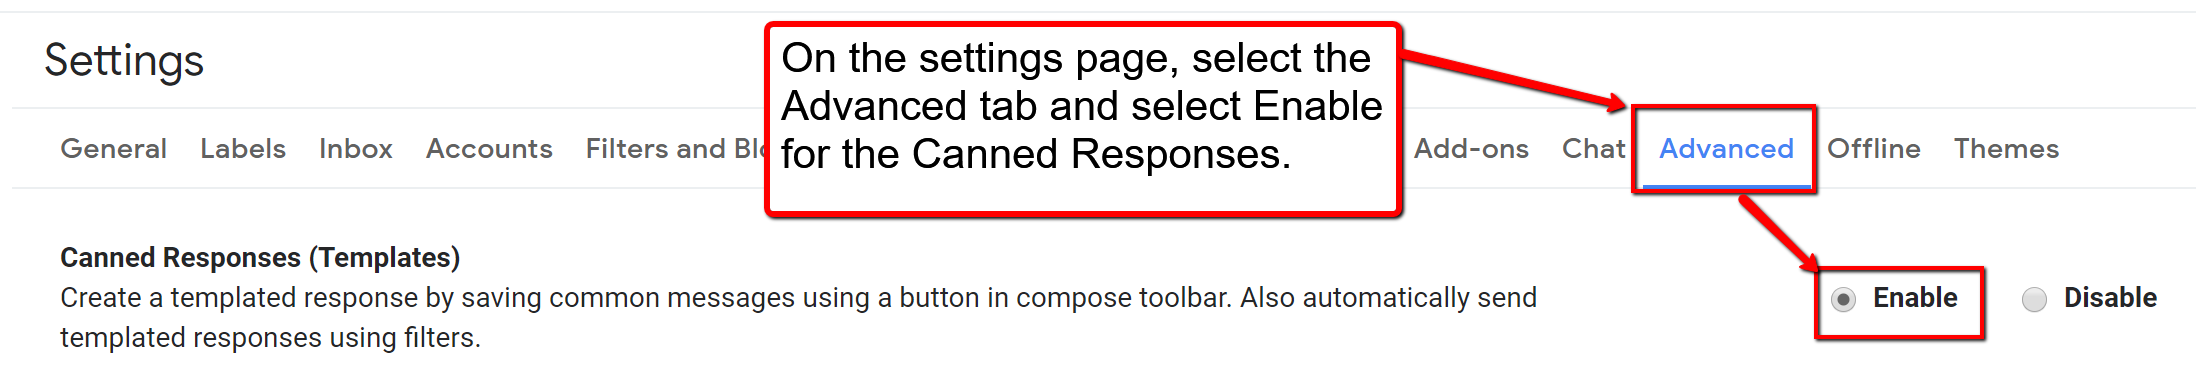 image depicting the advanced tab and where to enable the email templates feature.